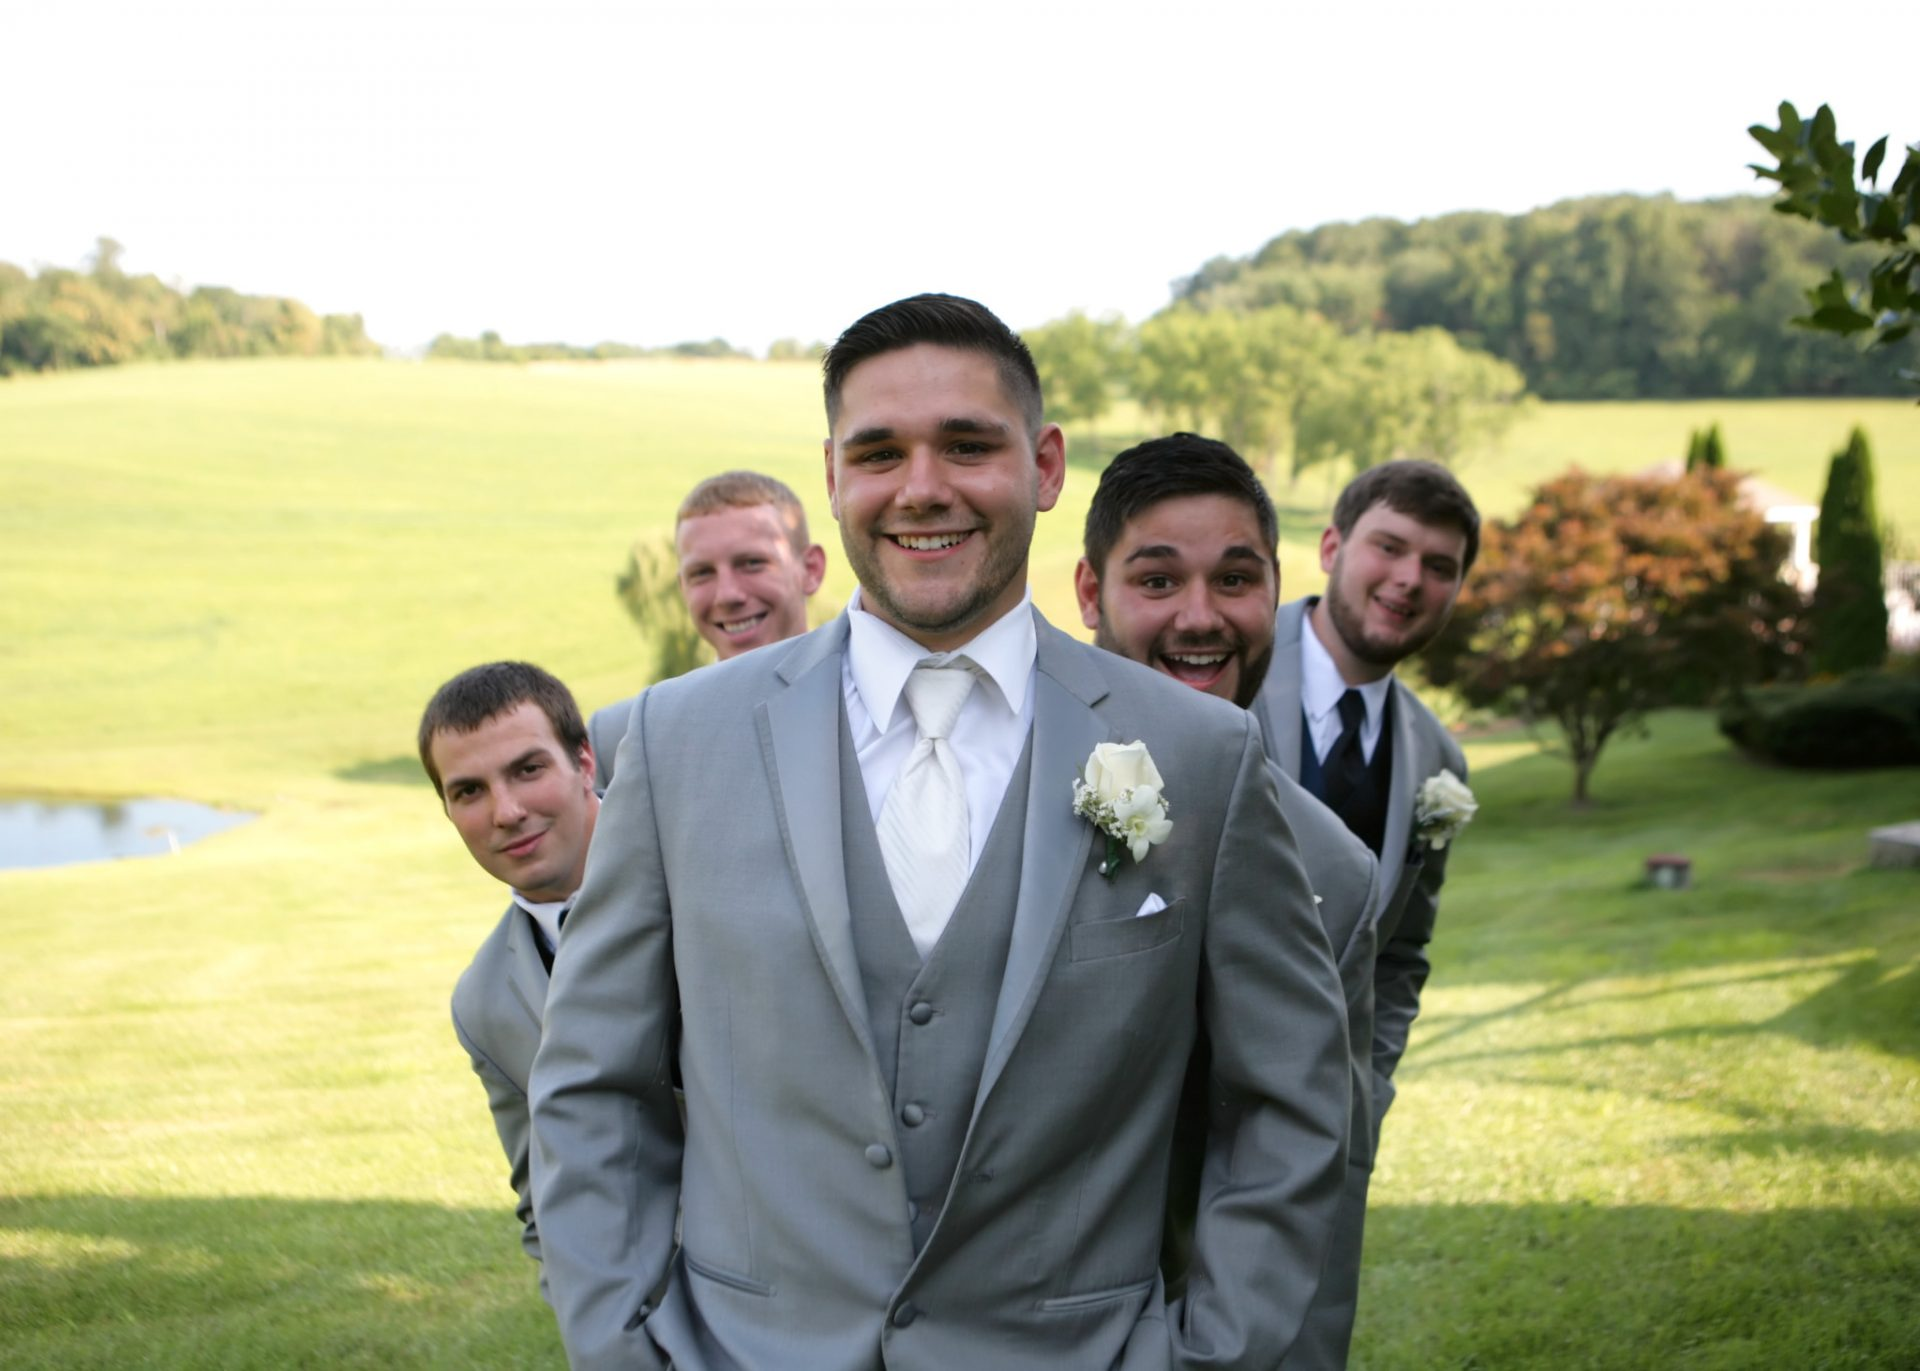 groomsmen on the back lawn during spring wedding in Maryland